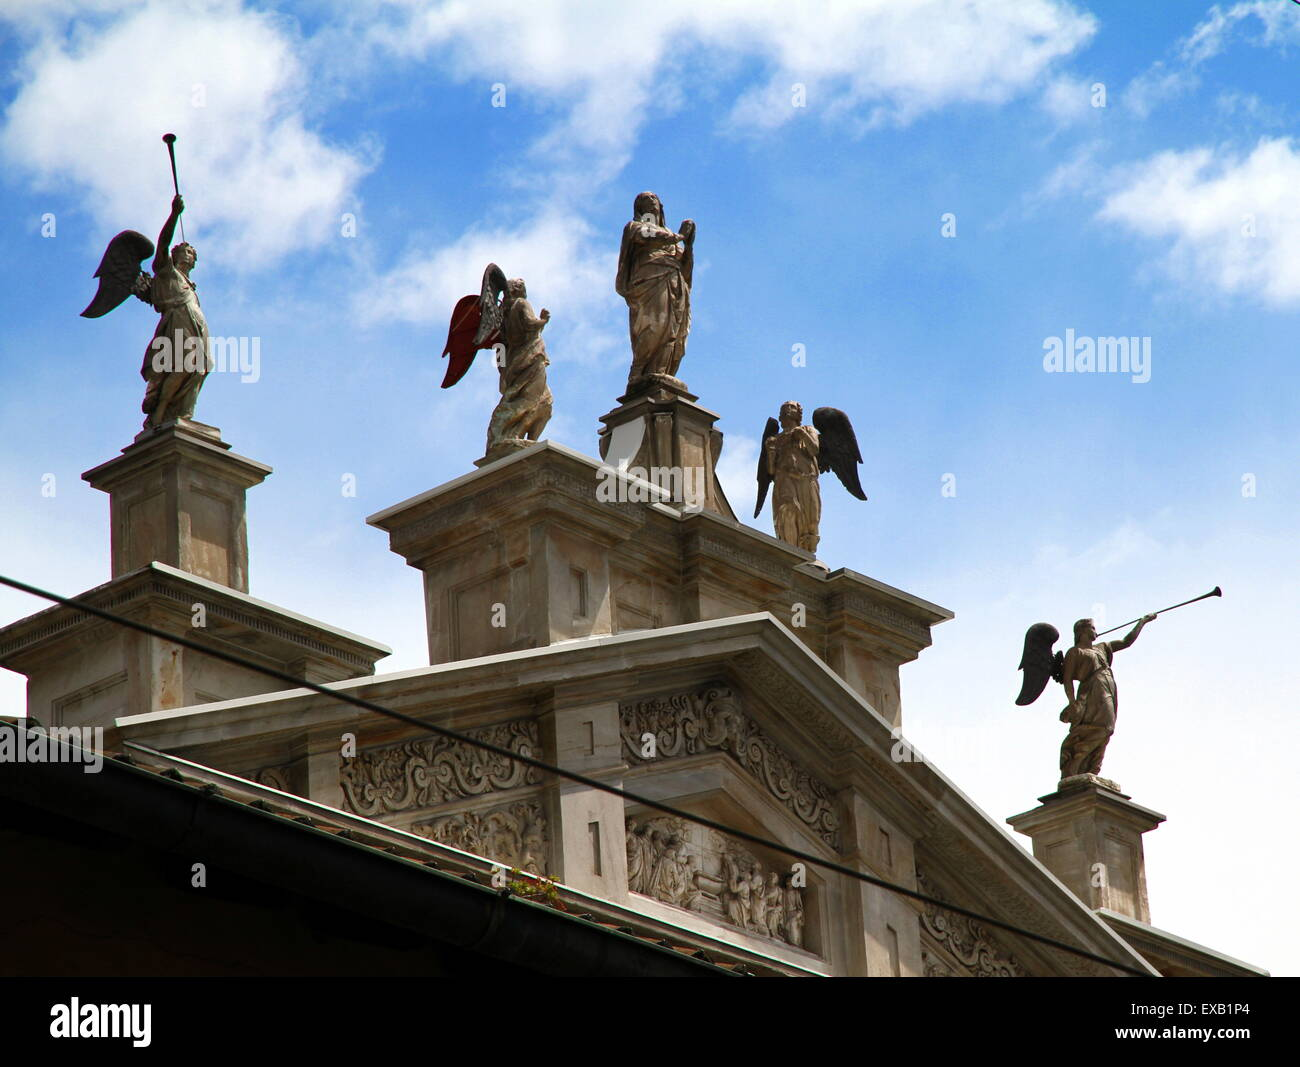 Saints and divine statues on the top of a church in Milan, Italy - Stock Image